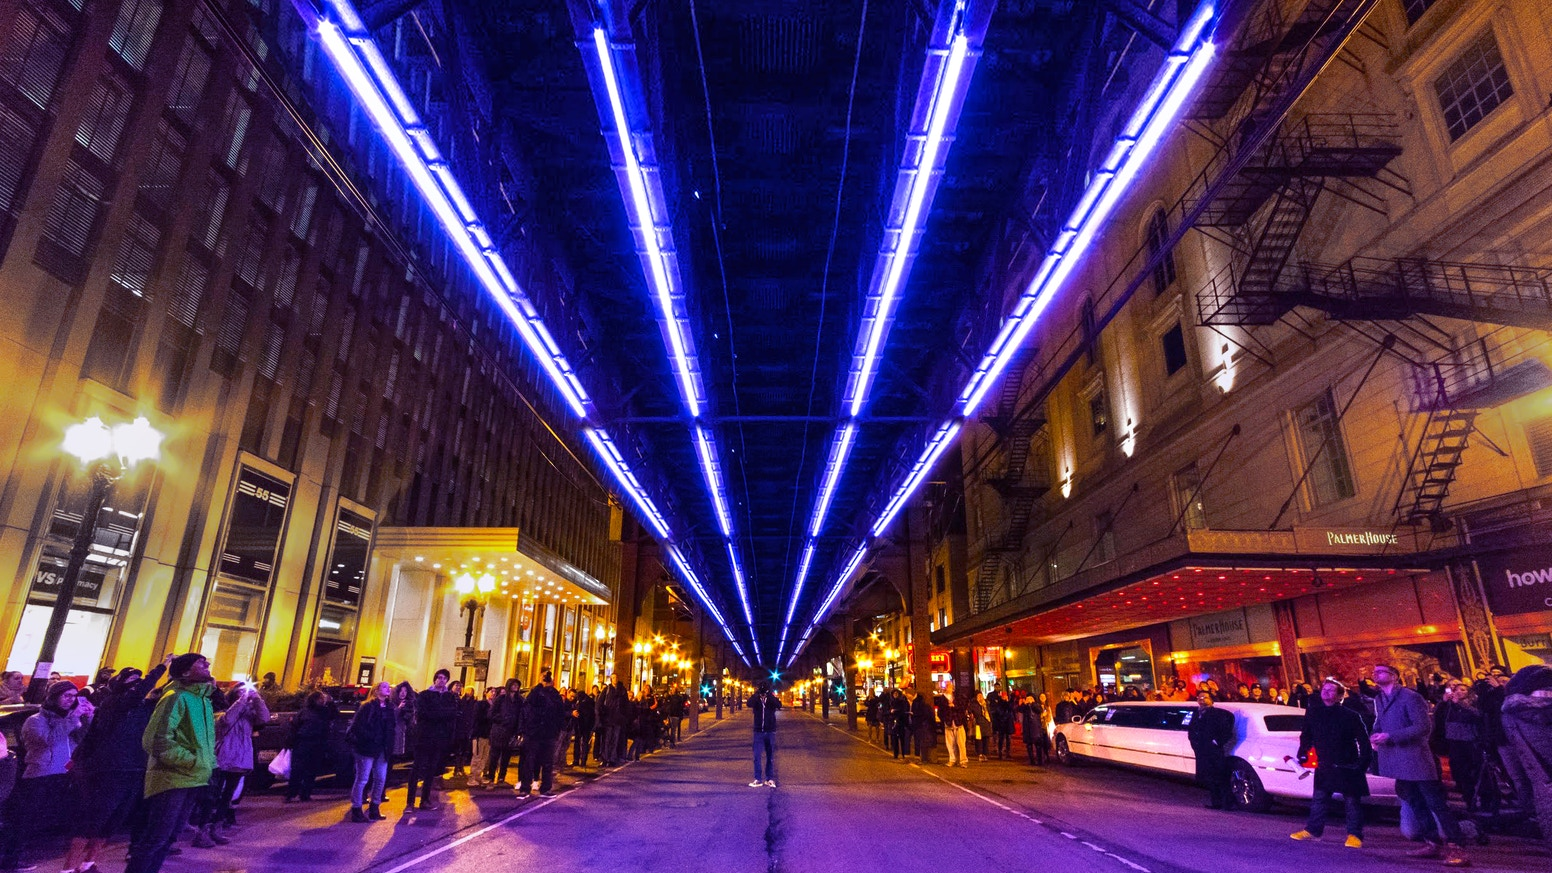 The biggest piece of public art in Chicago's history - an interactive light sculpture under the Wabash L tracks, designed by you.